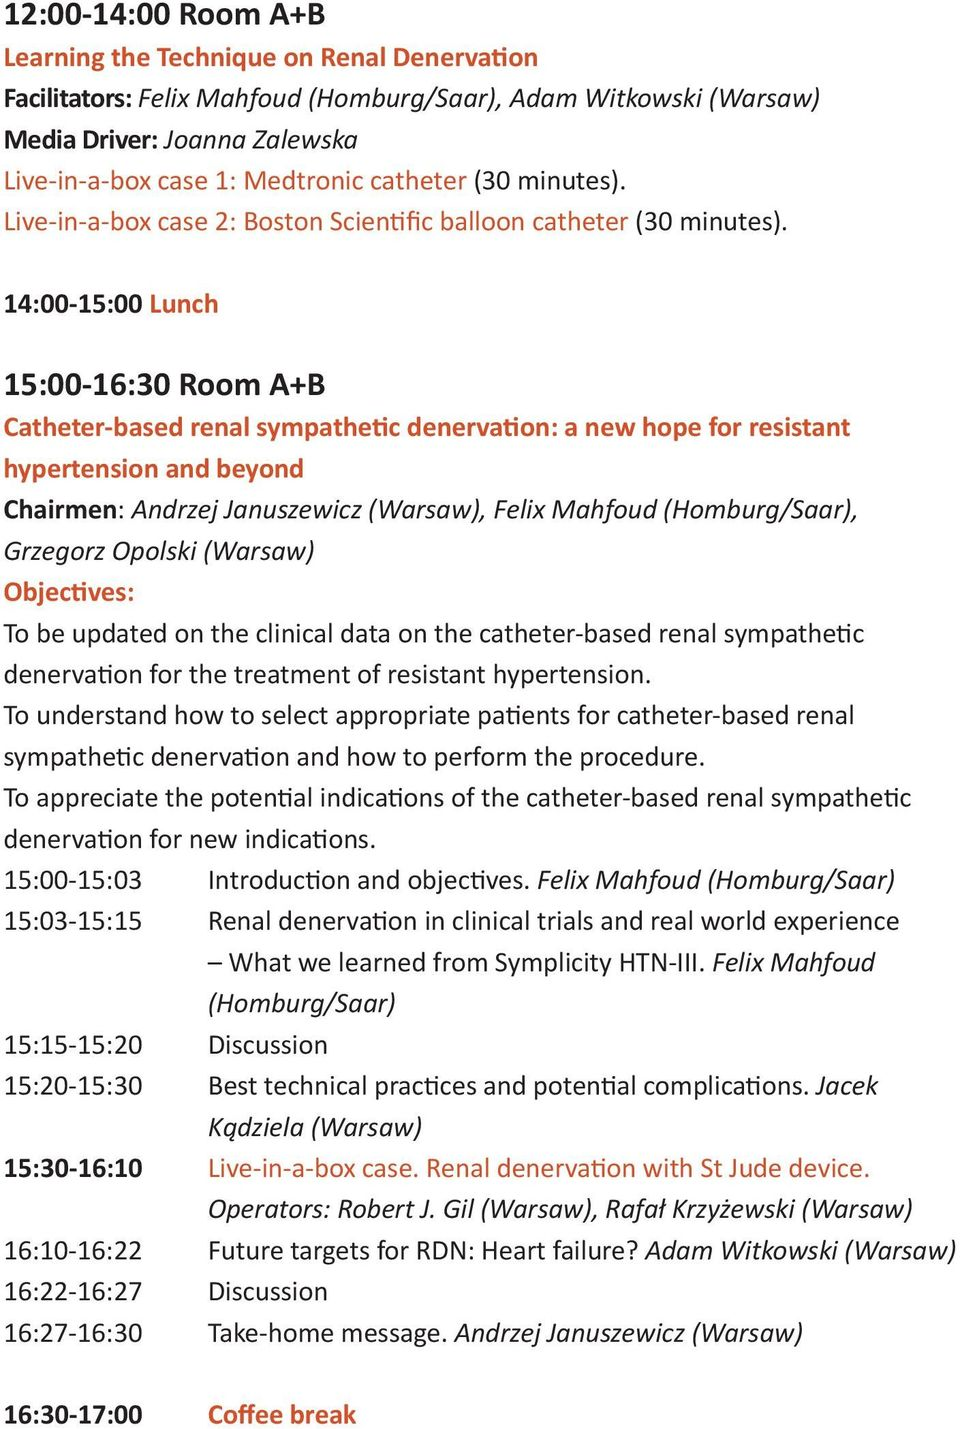 14:00-15:00 Lunch 15:00-16:30 Room A+B Catheter-based renal sympathetic denervation: a new hope for resistant hypertension and beyond Chairmen: Andrzej Januszewicz (Warsaw), Felix Mahfoud